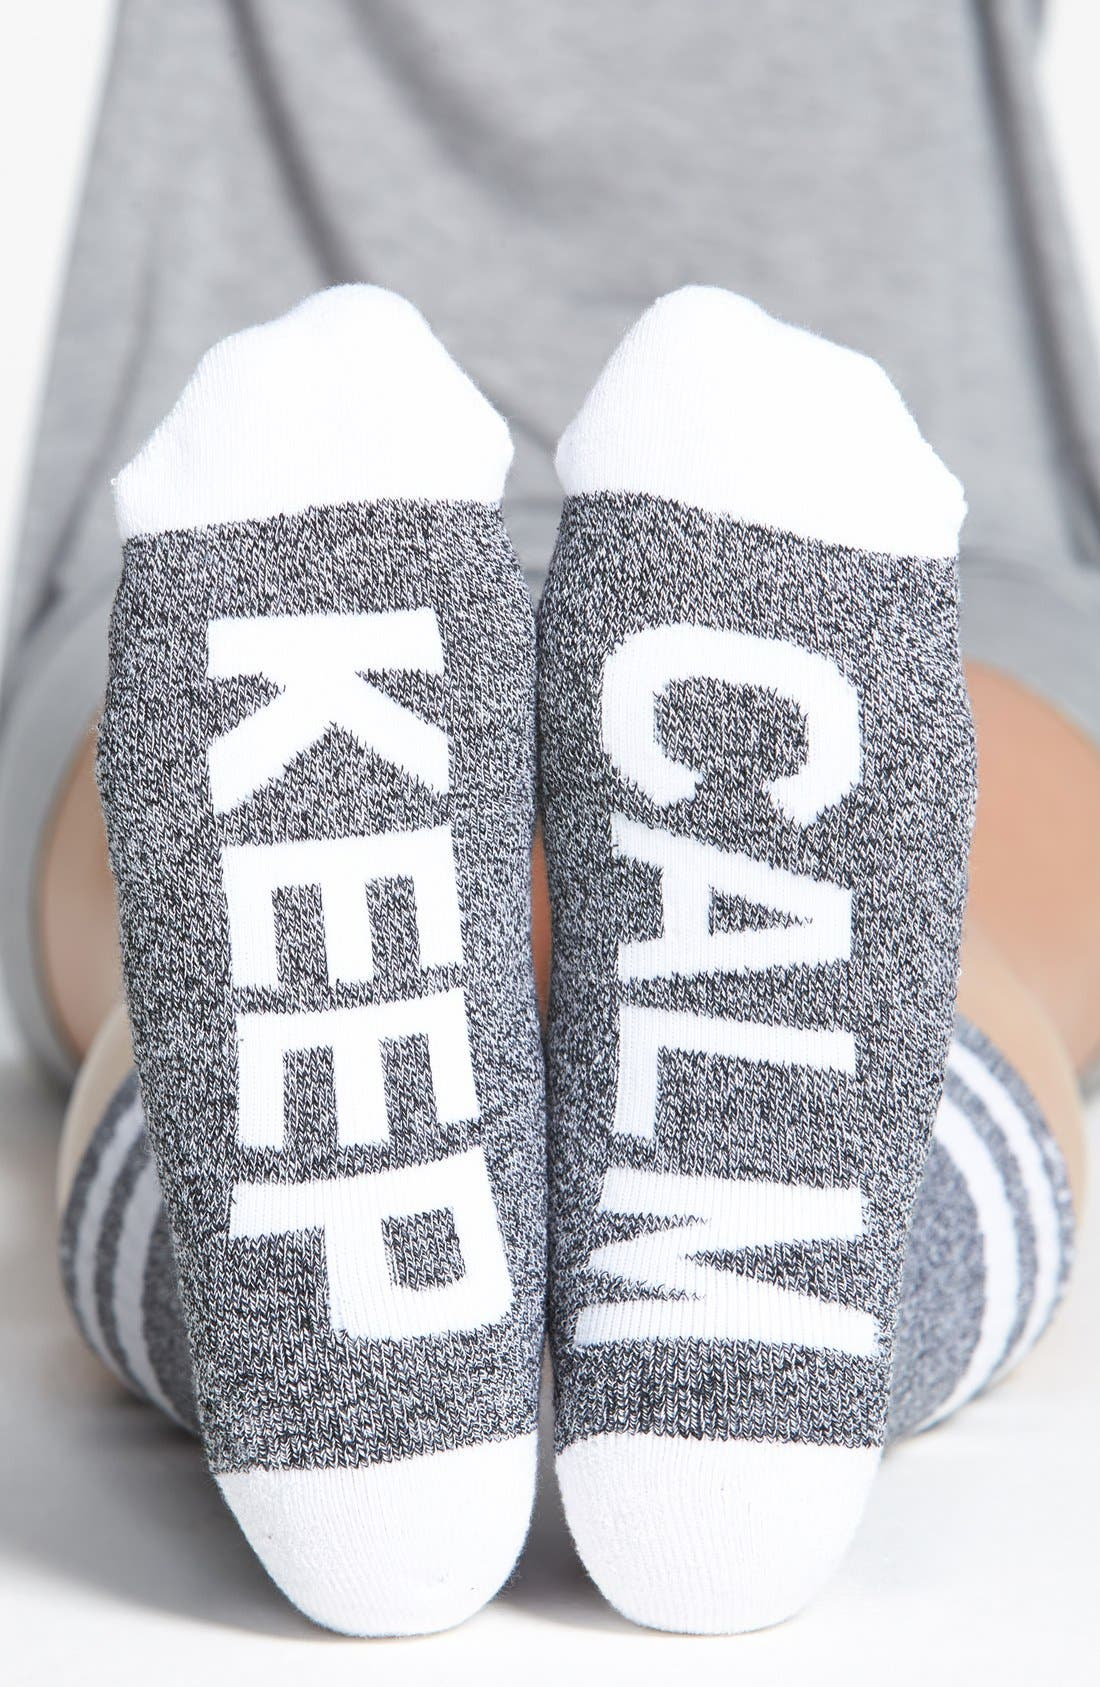 Main Image - Arthur George by R. Kardashian 'Keep Calm' Socks